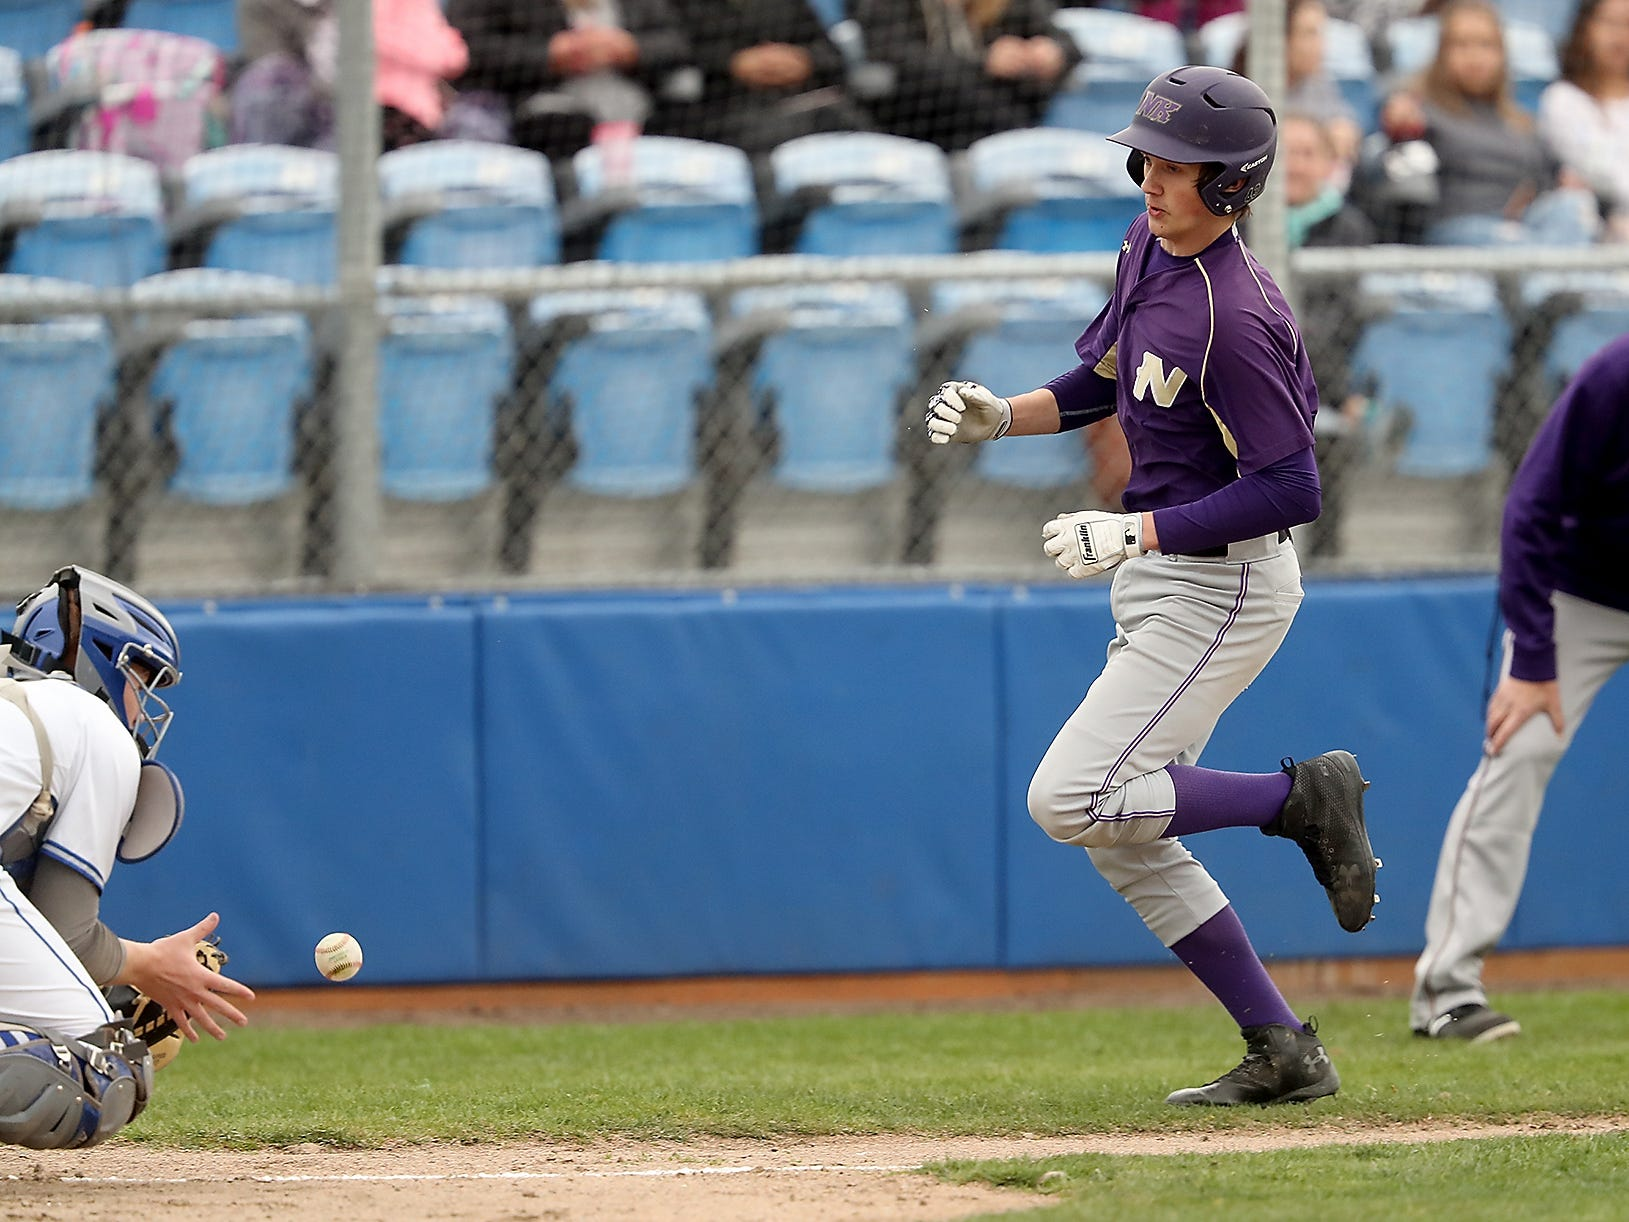 North Kitsap's Ryland Schmidt races the throw to Olympic catcher Charlie Hennessy at Gene Lobe Field on Wednesday, March 27, 2019.